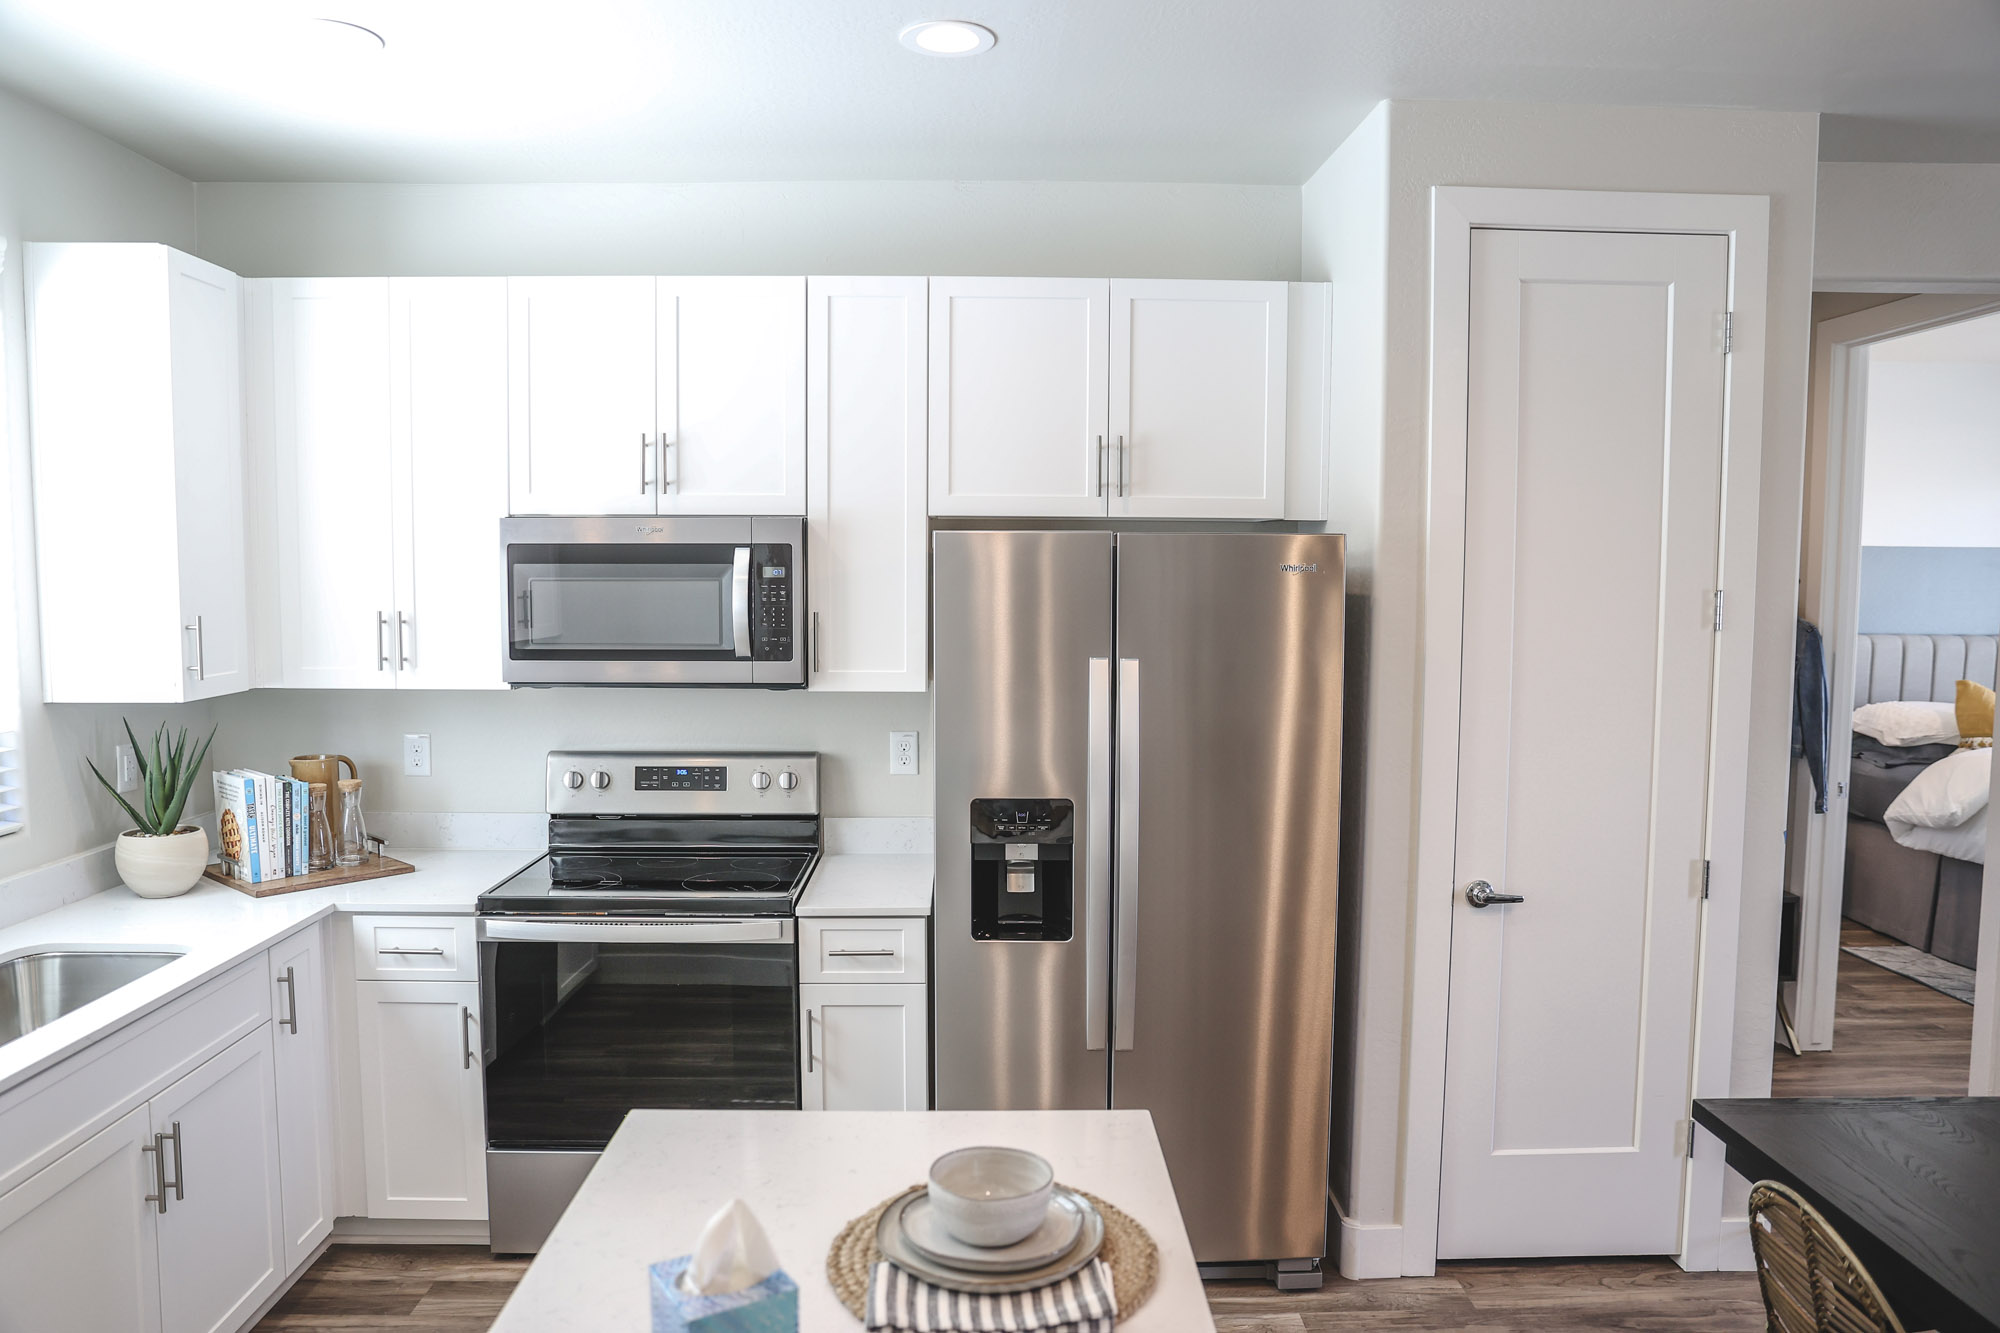 Built-in Microwave at Olive Marketplace Apartments in Glendale, AZ